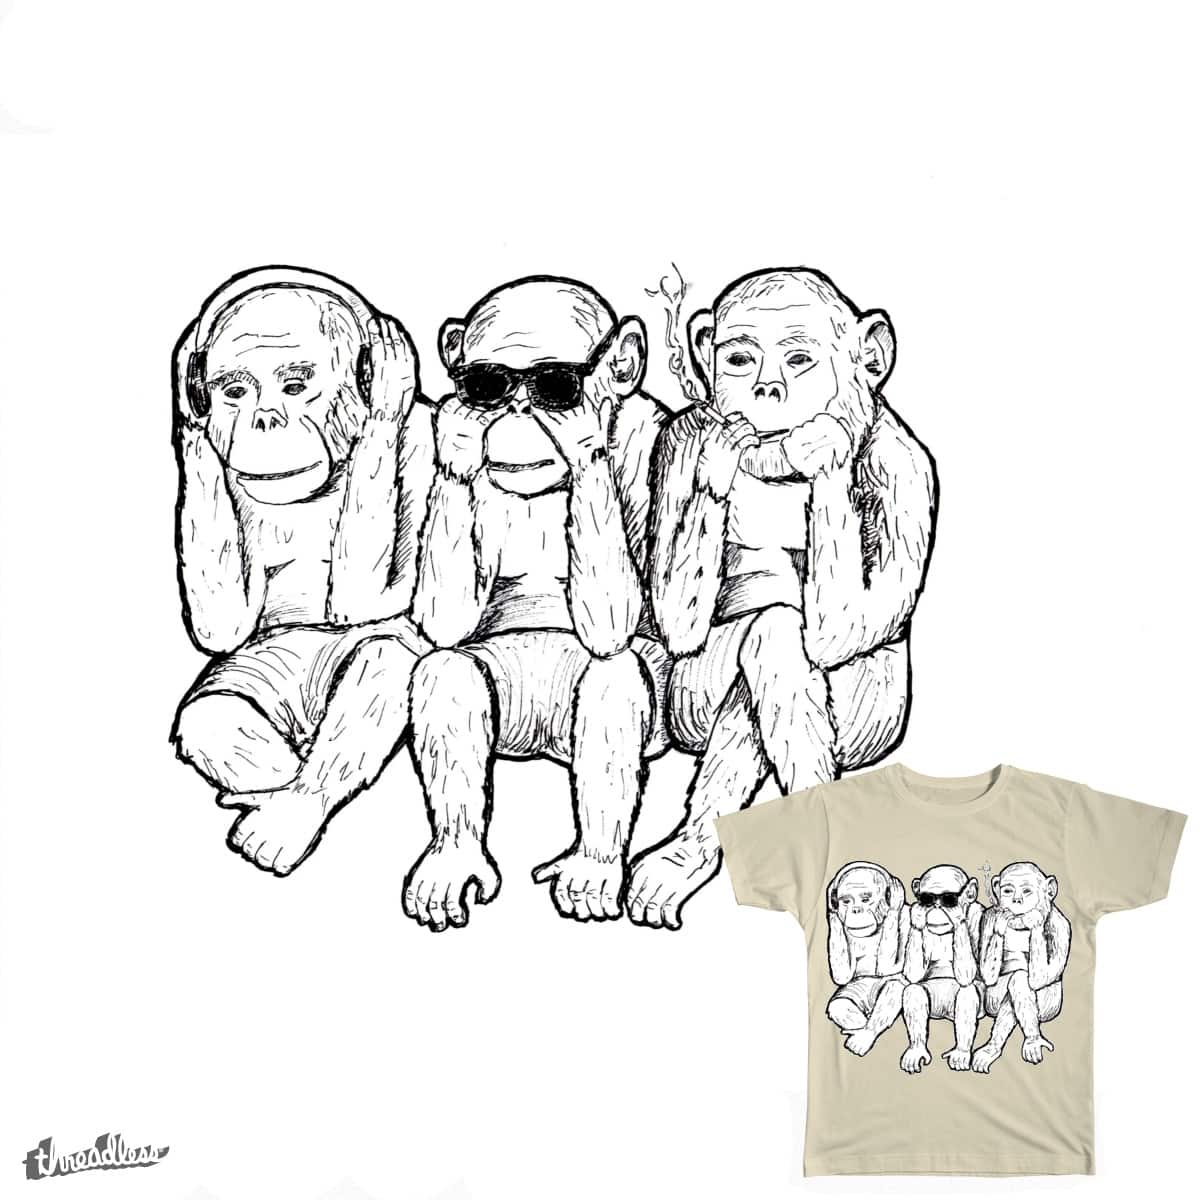 Hear No Evil by AaronSkye on Threadless